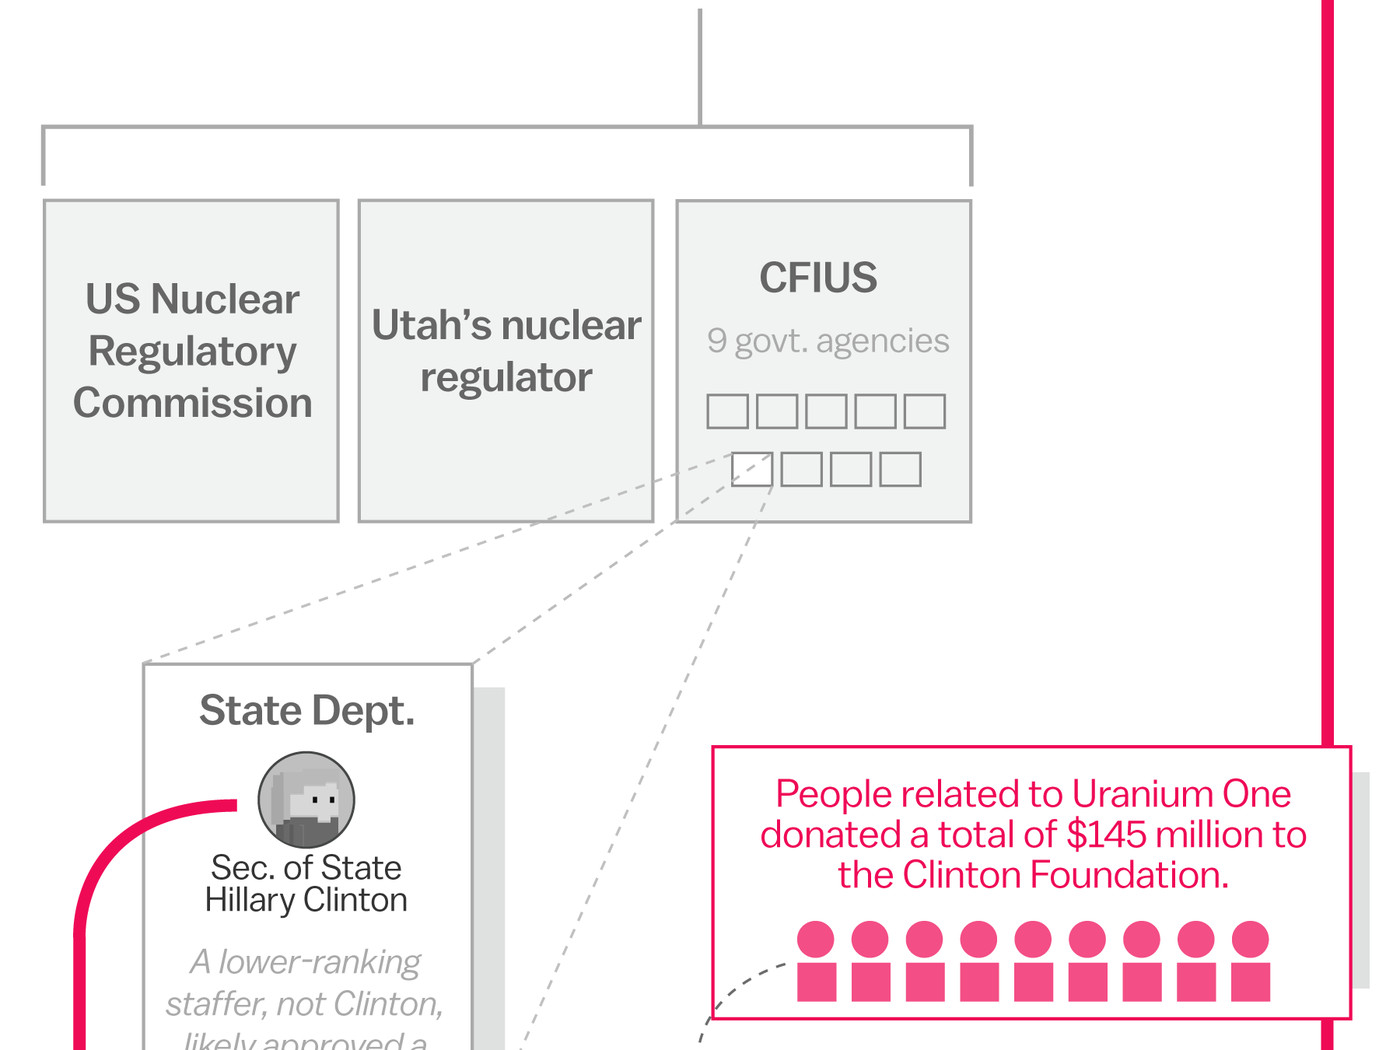 This Simple Chart Debunks The Conspiracy Theory That Hillary Clinton Diagram Also Palm Reading And Meaning On Sold Uranium To Russia Vox